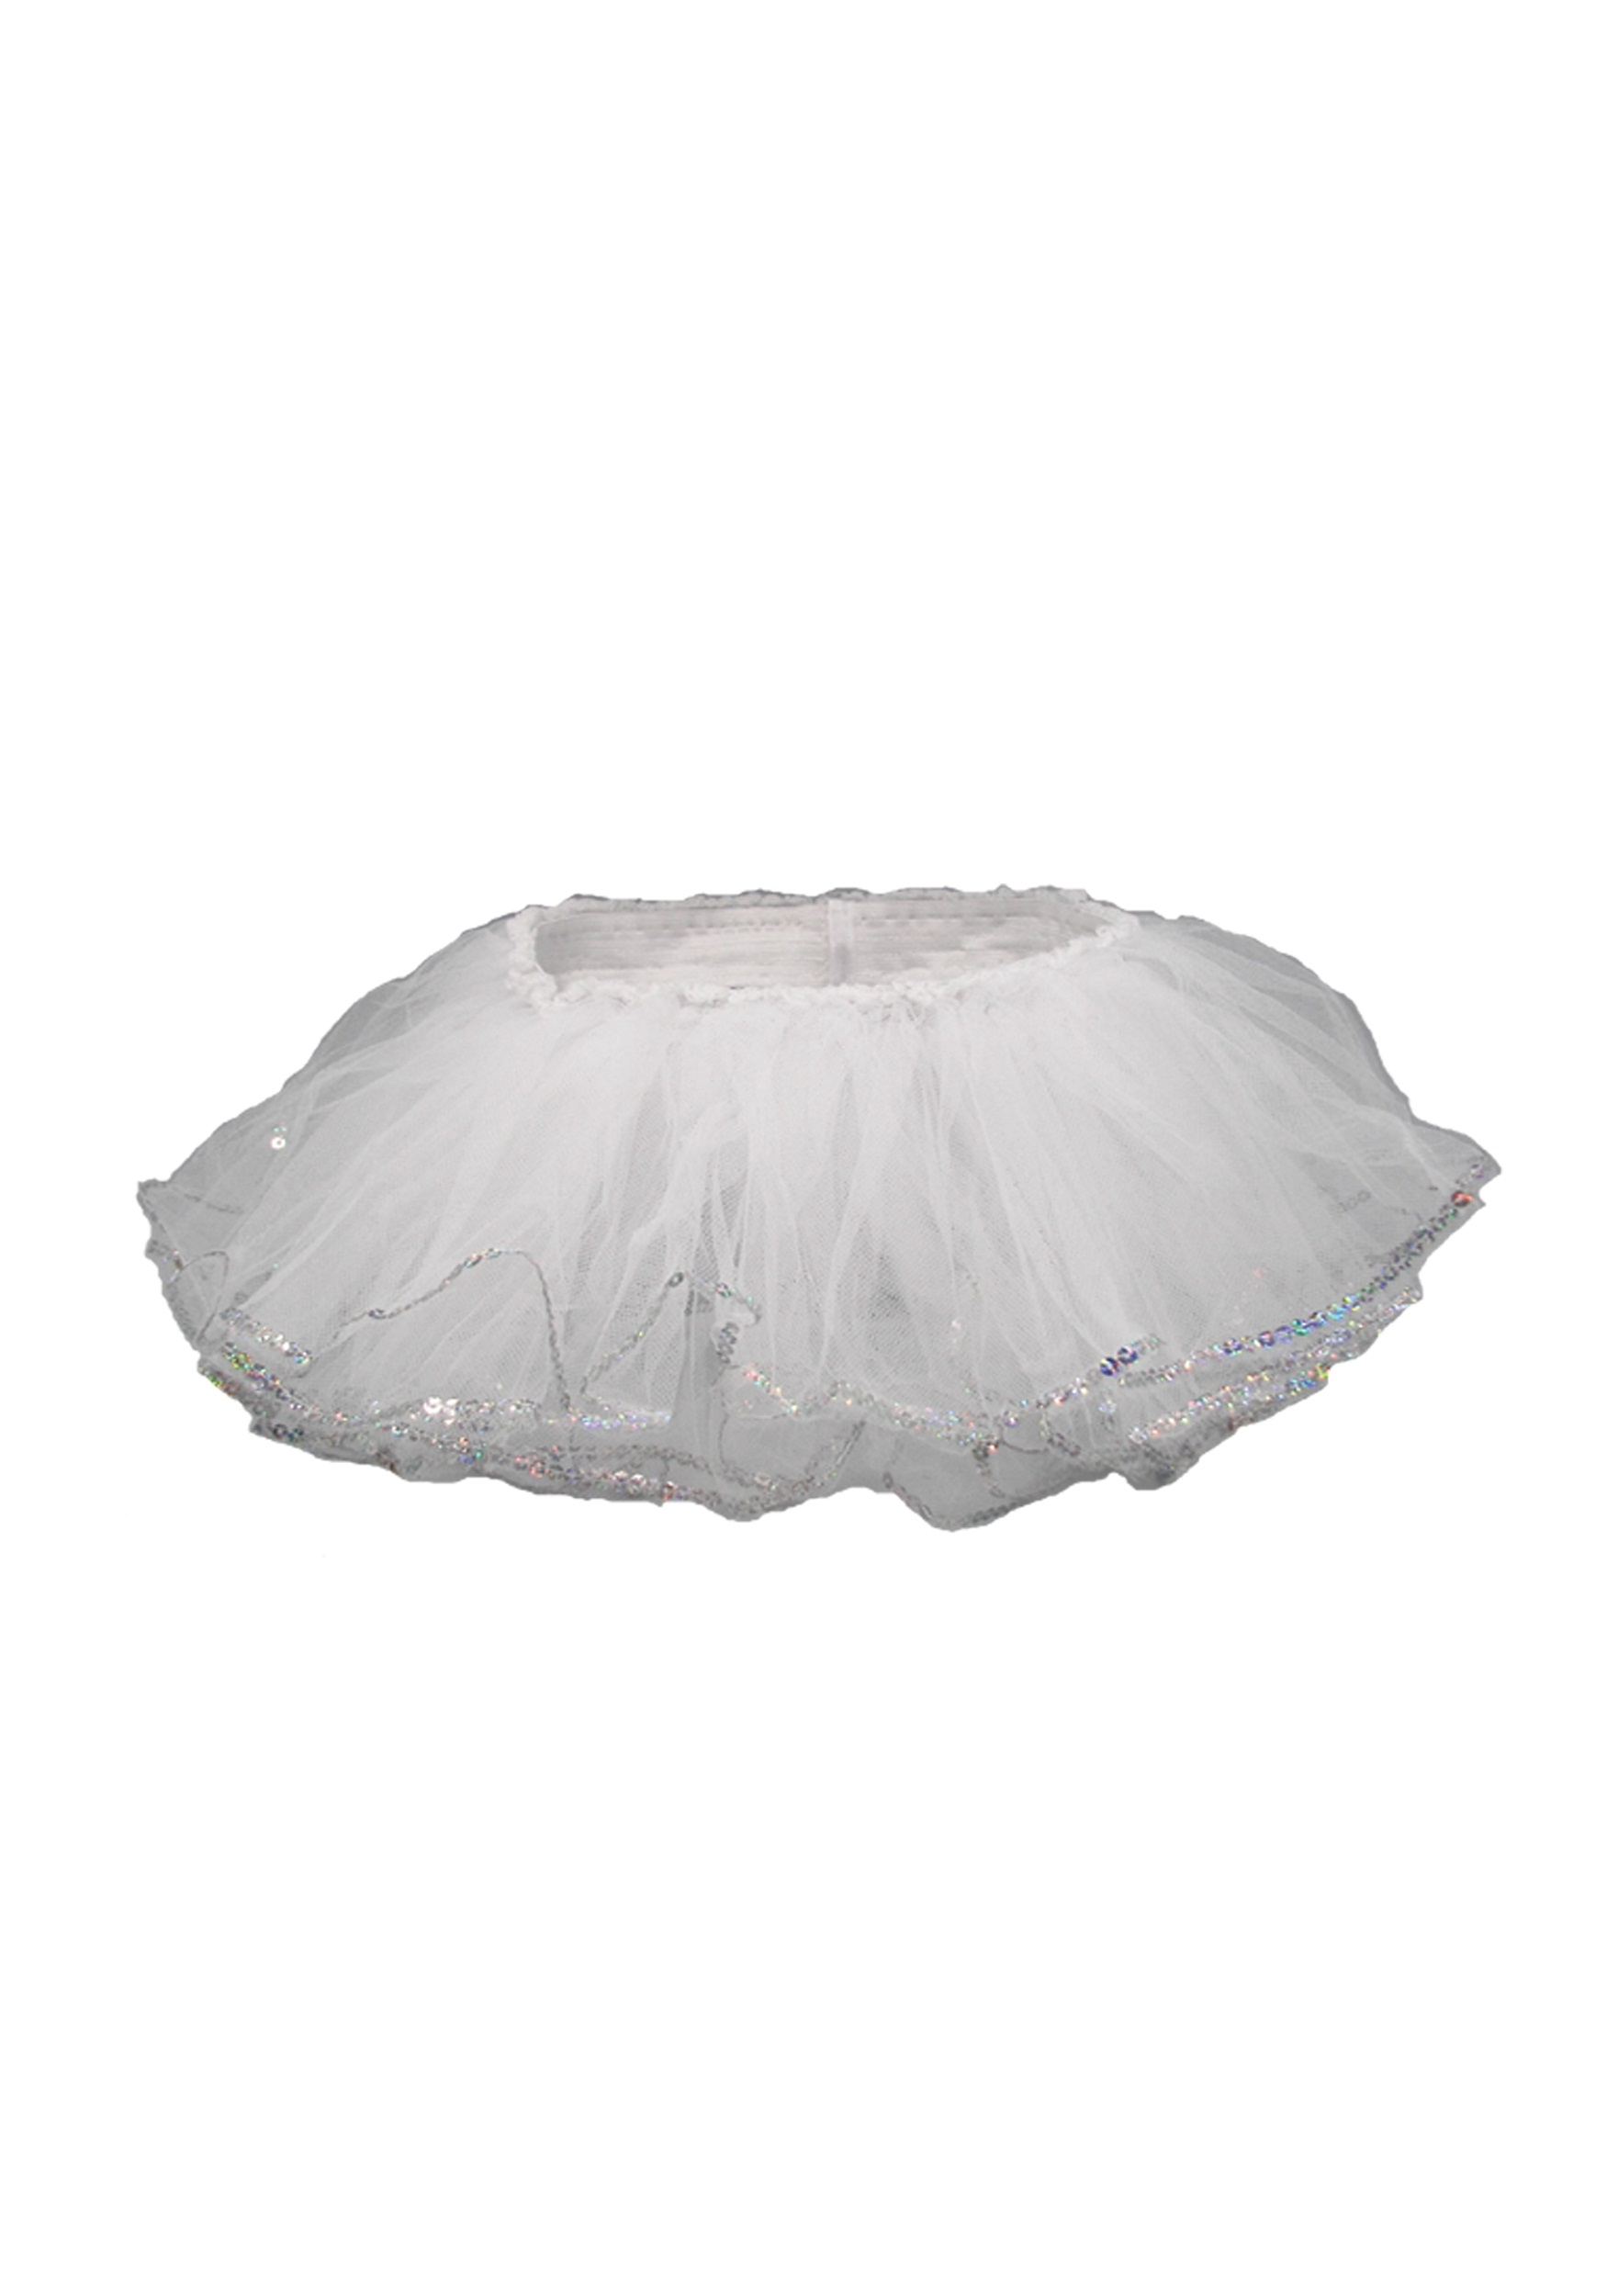 Infant/Toddler White Sequin Tutu